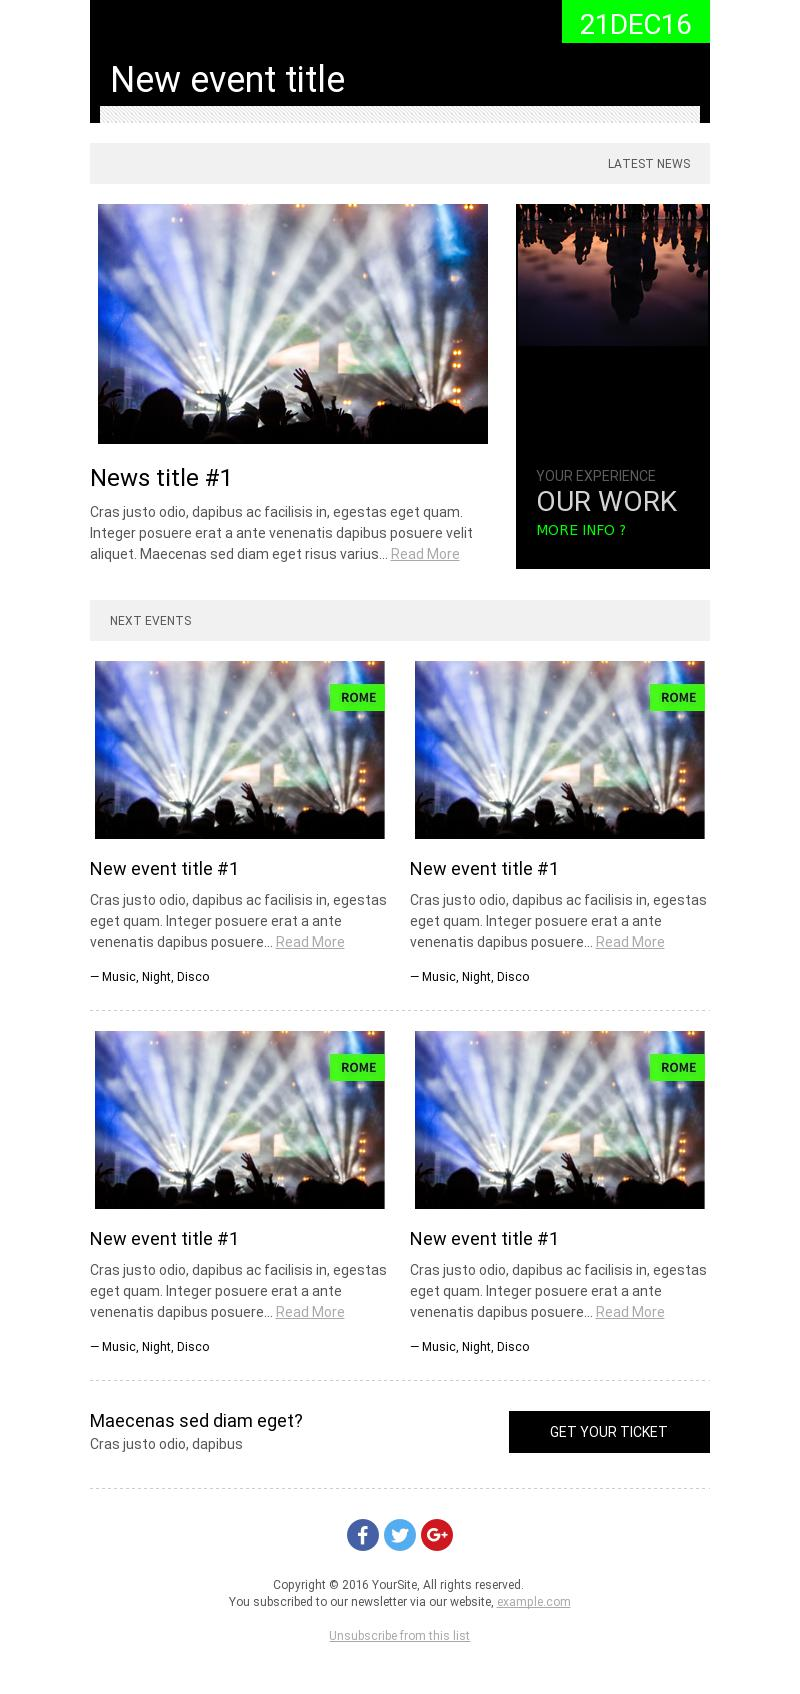 Green Events Next Events Email Template For Travel Leisure Bee